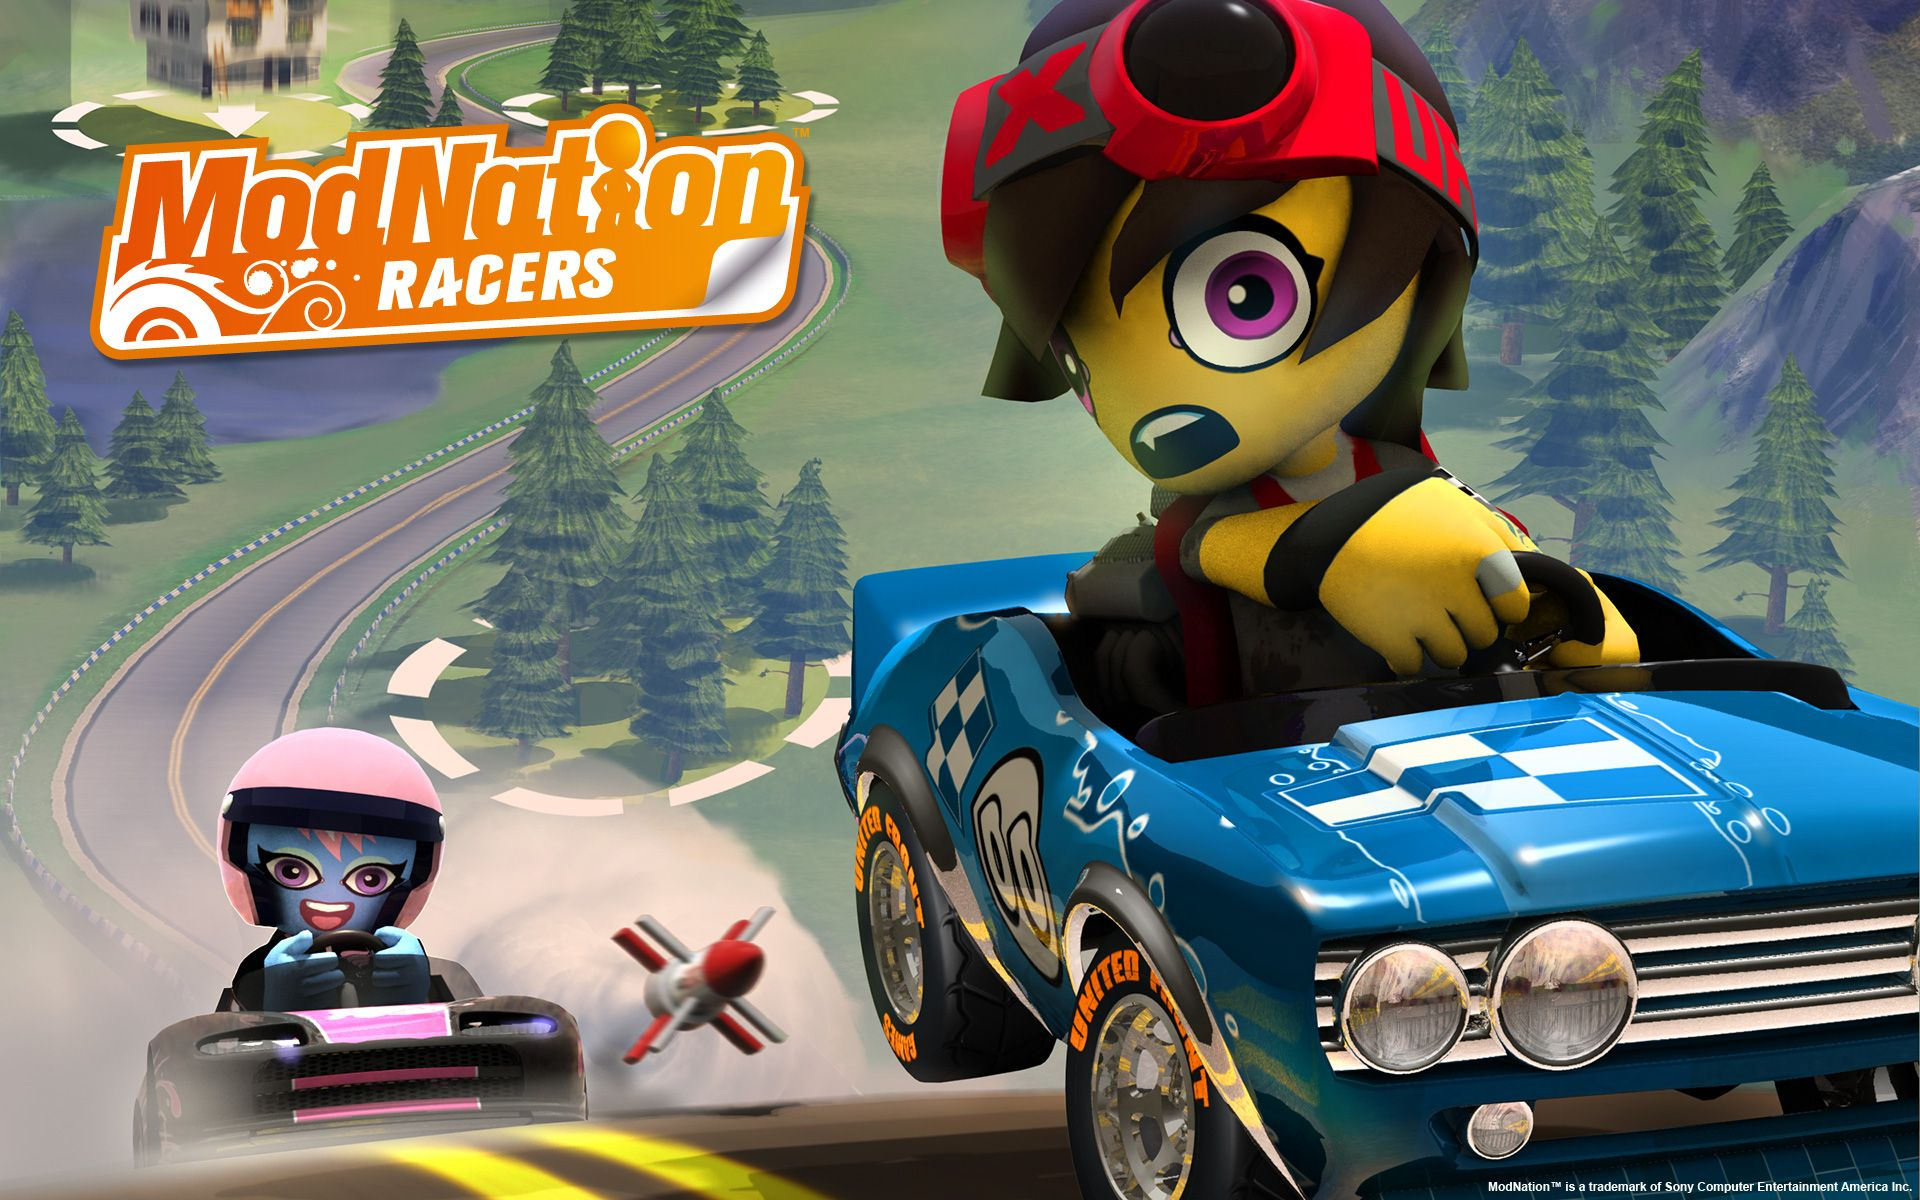 mod nation Google Search Best ps3 games, Ps3 games